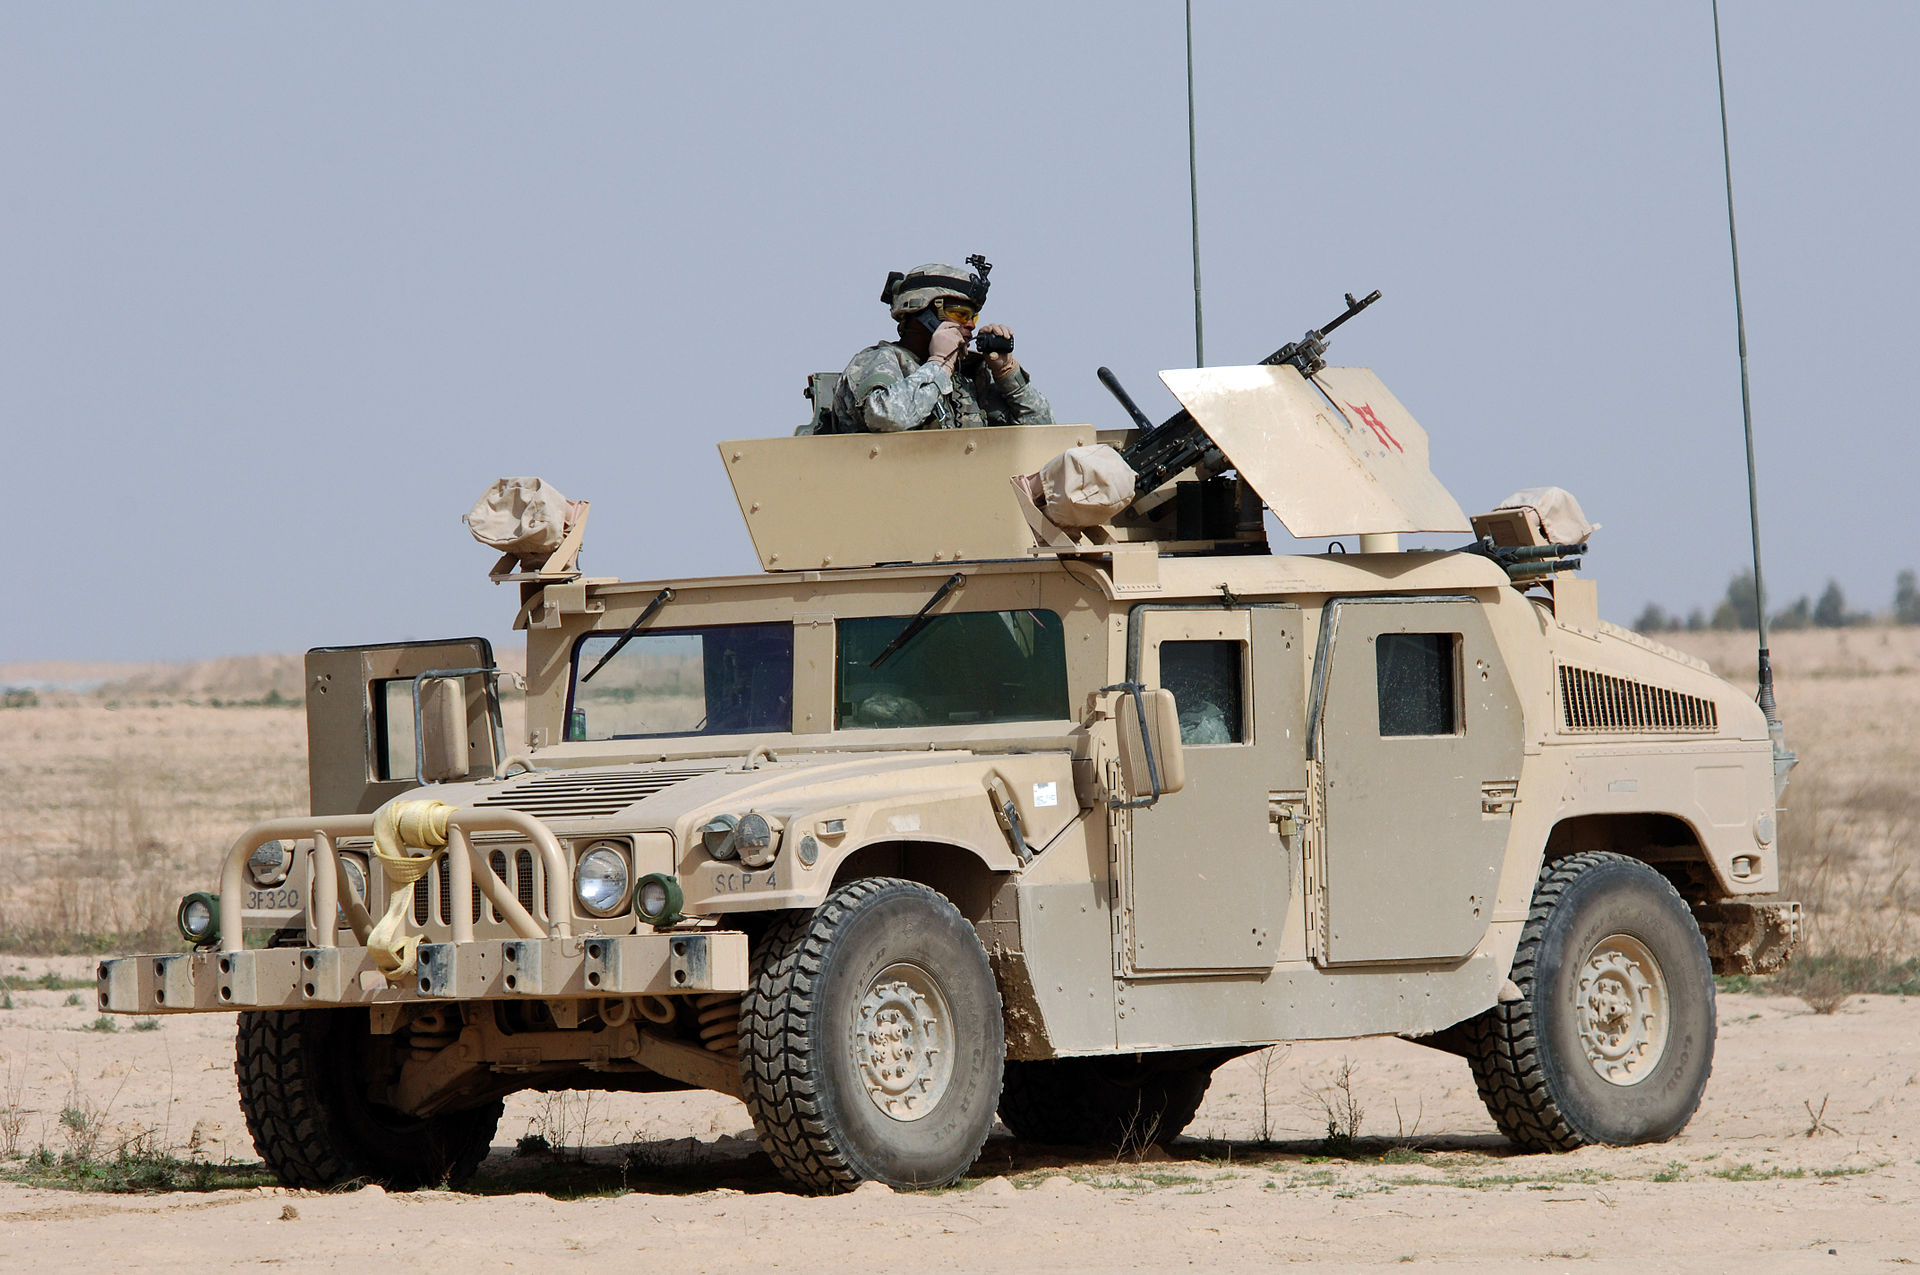 Would You f road in an Army Humvee Vehicles Finally fered on